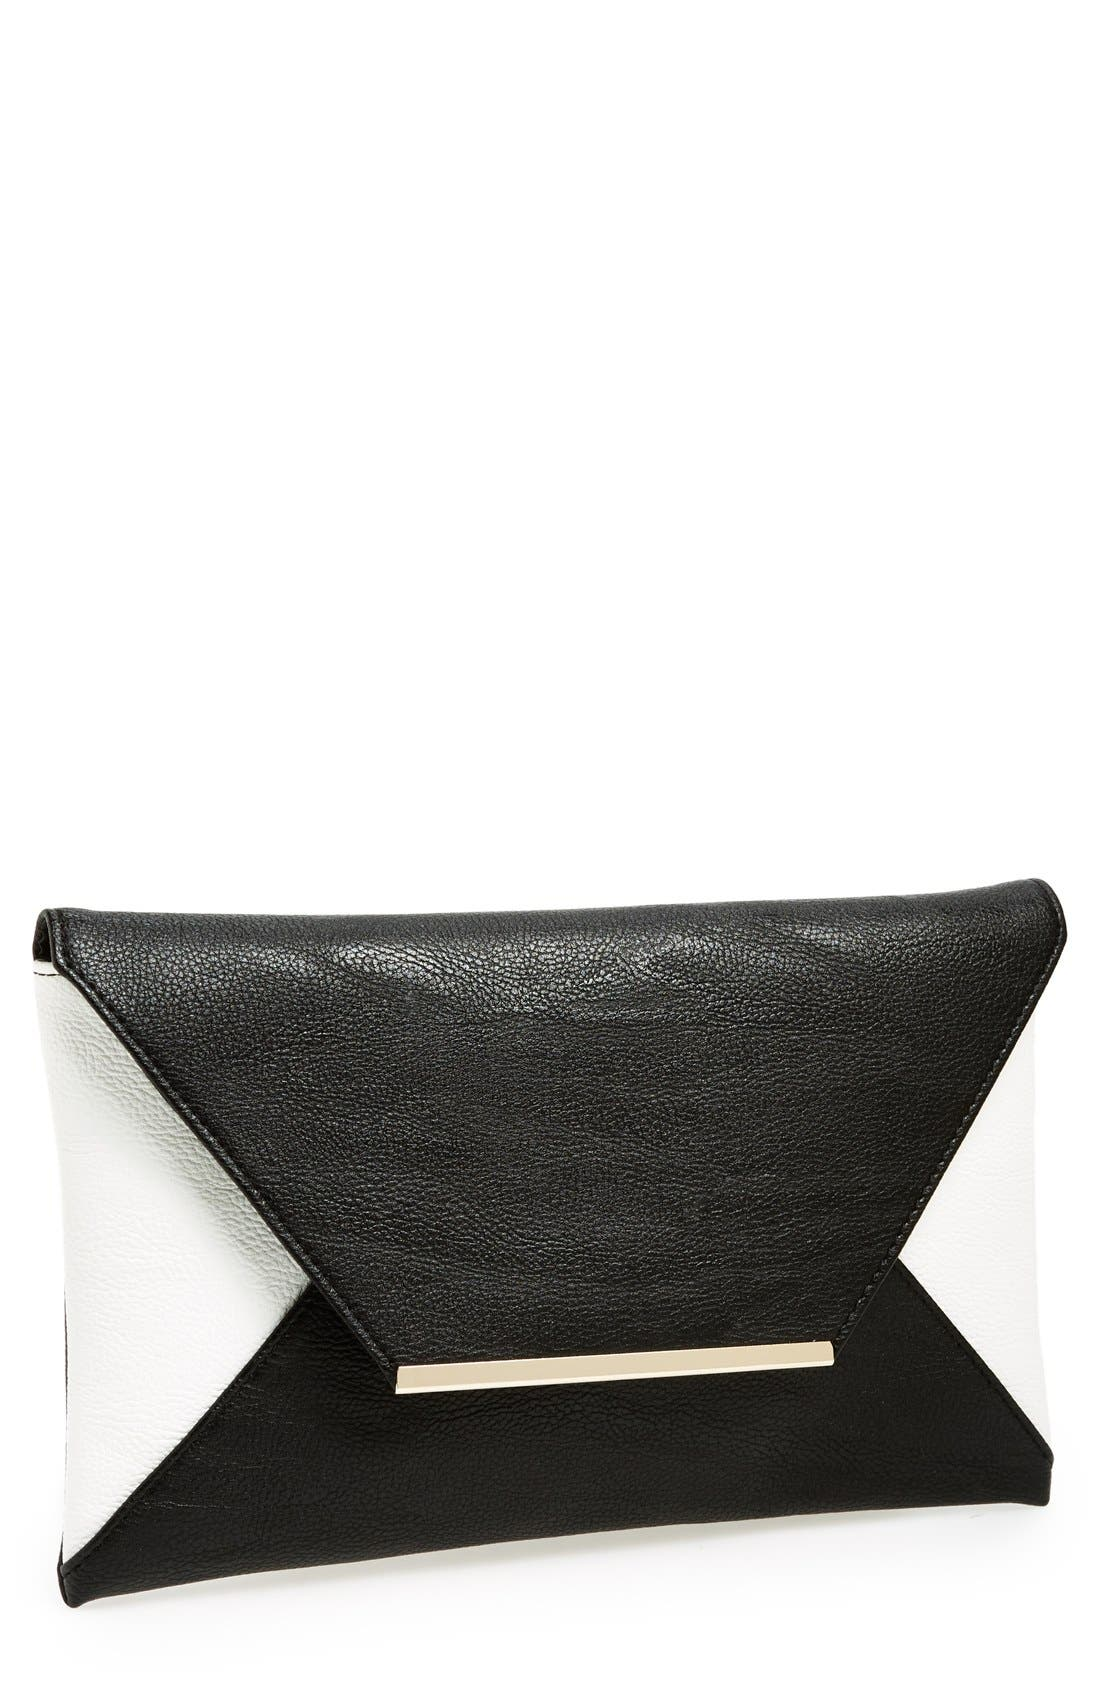 Main Image - POVERTY FLATS by rian Colorblock Envelope Clutch